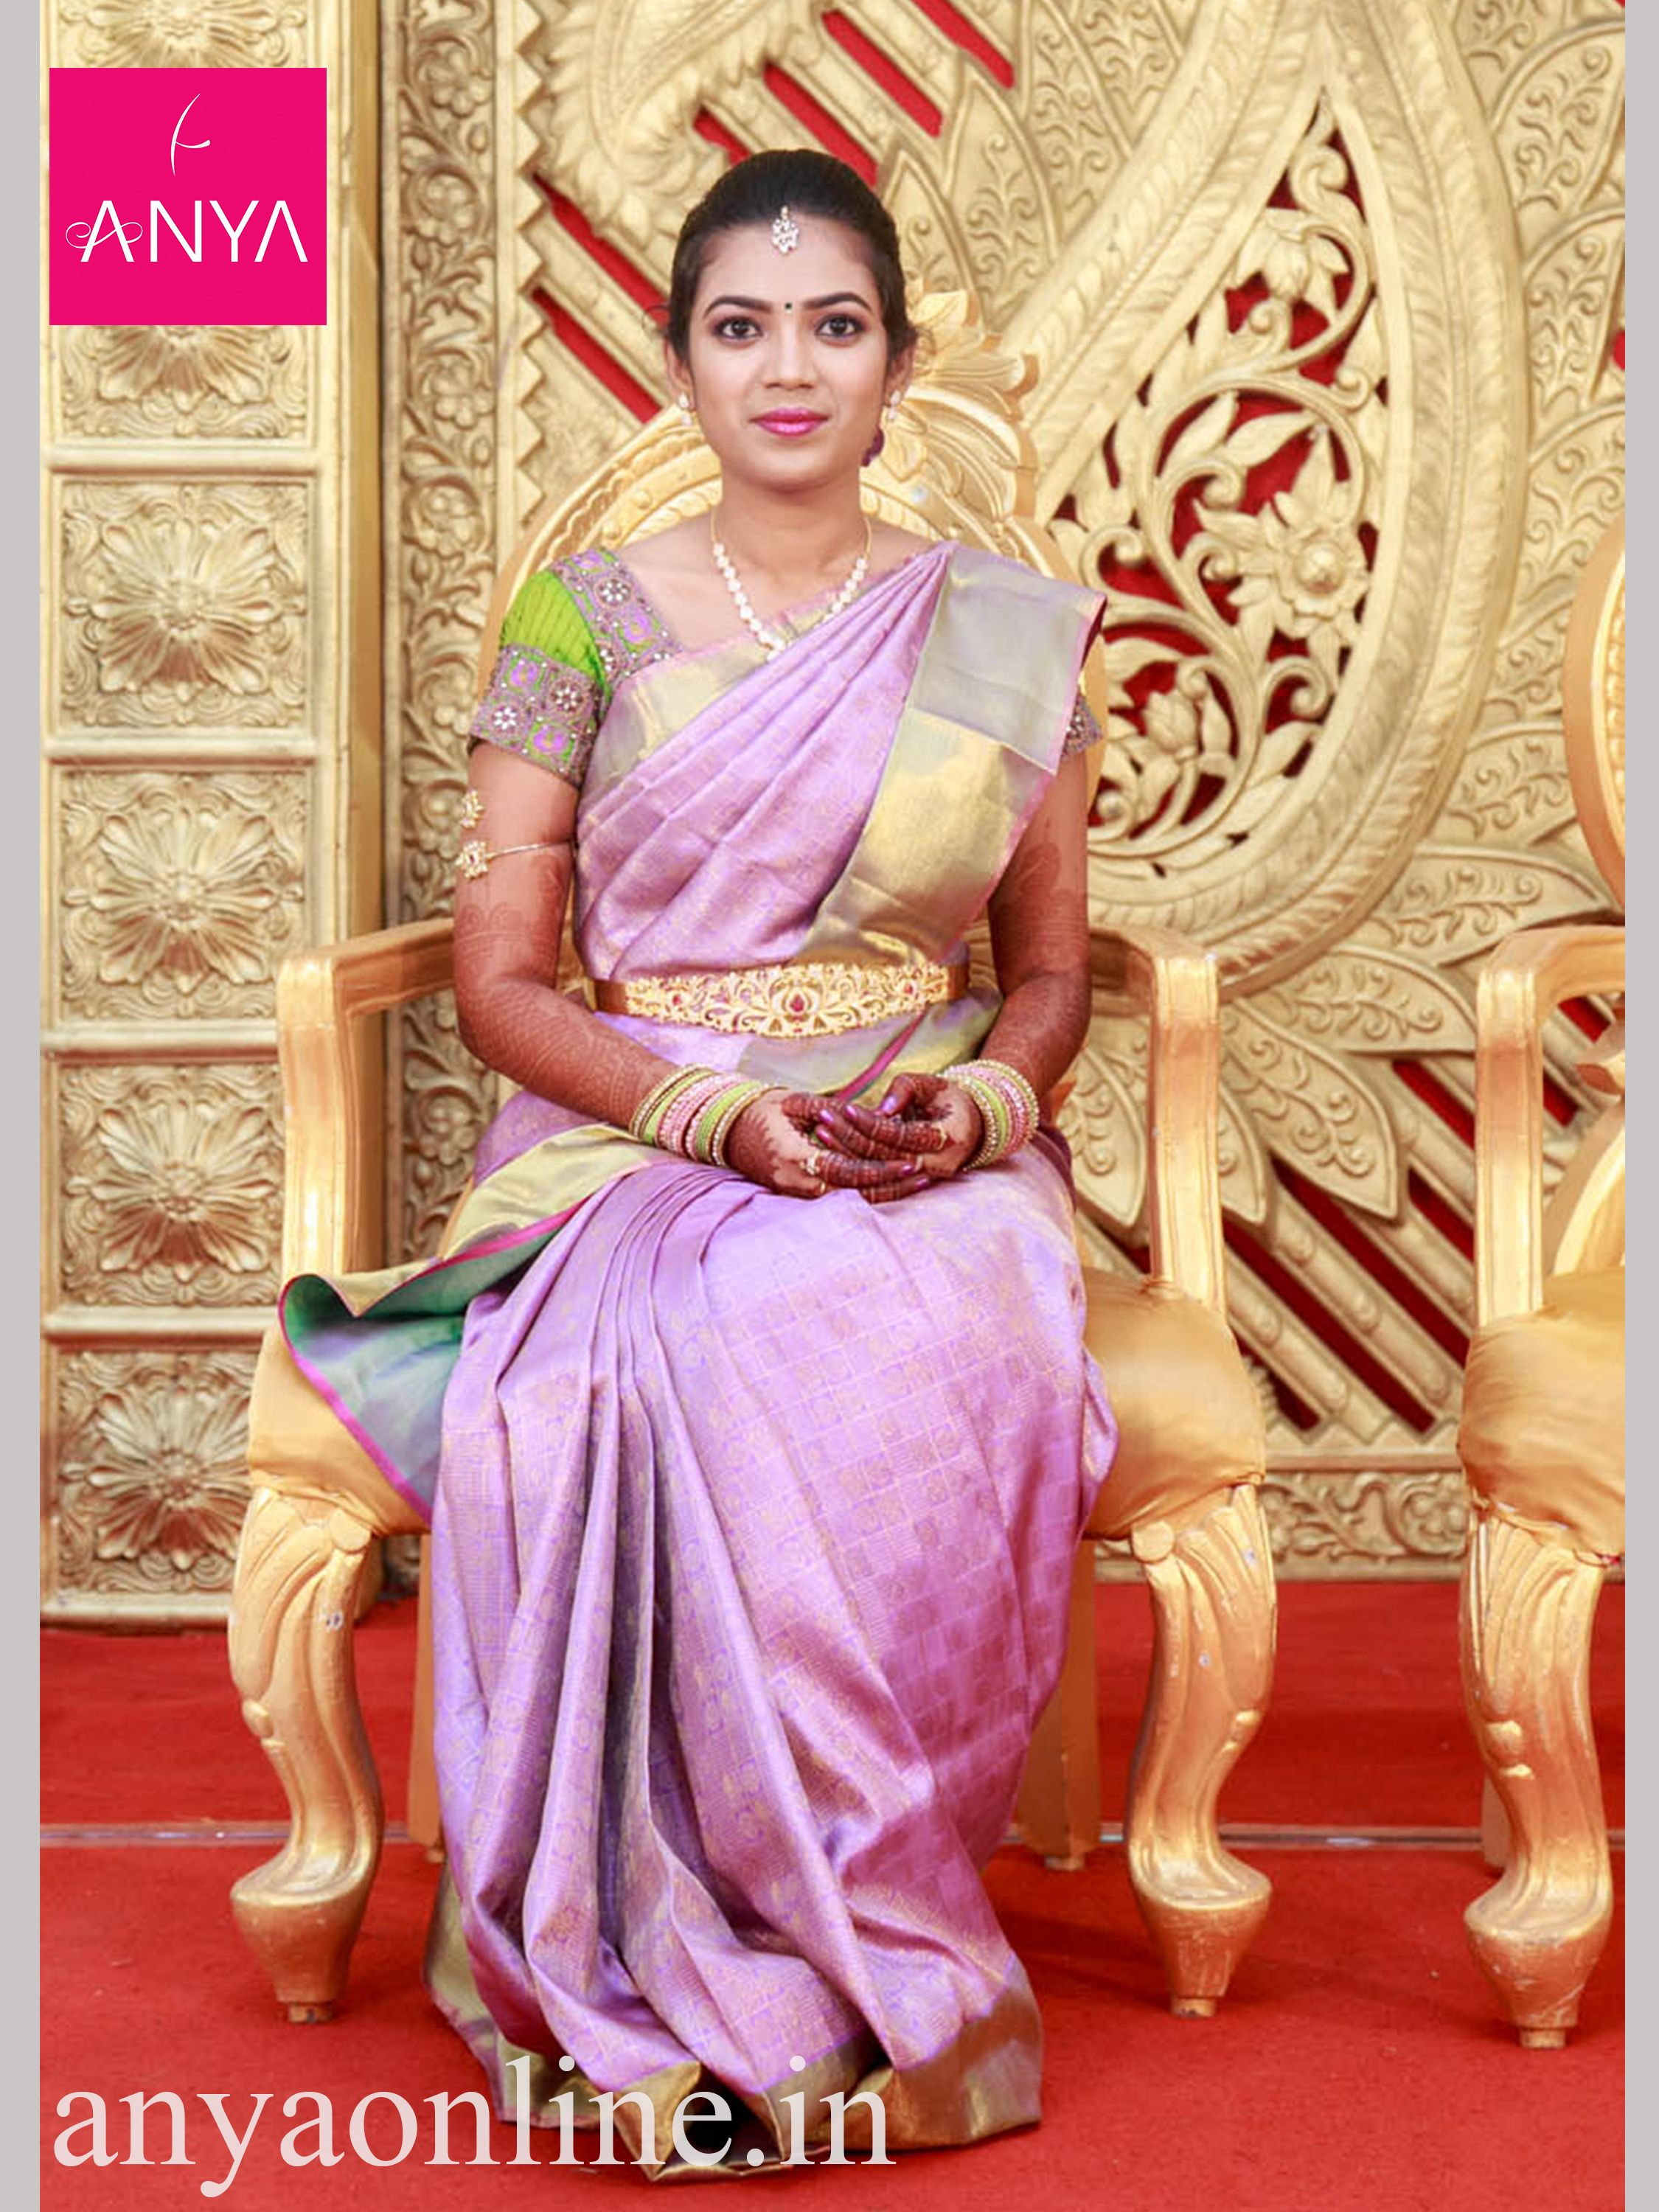 Anya Boutique Provides Best Collection Of Wedding Dress Wedding Blouses And Wedding Sarees Like Silk Saree Designer Sarees Saree Designs Wedding Blouse Saree